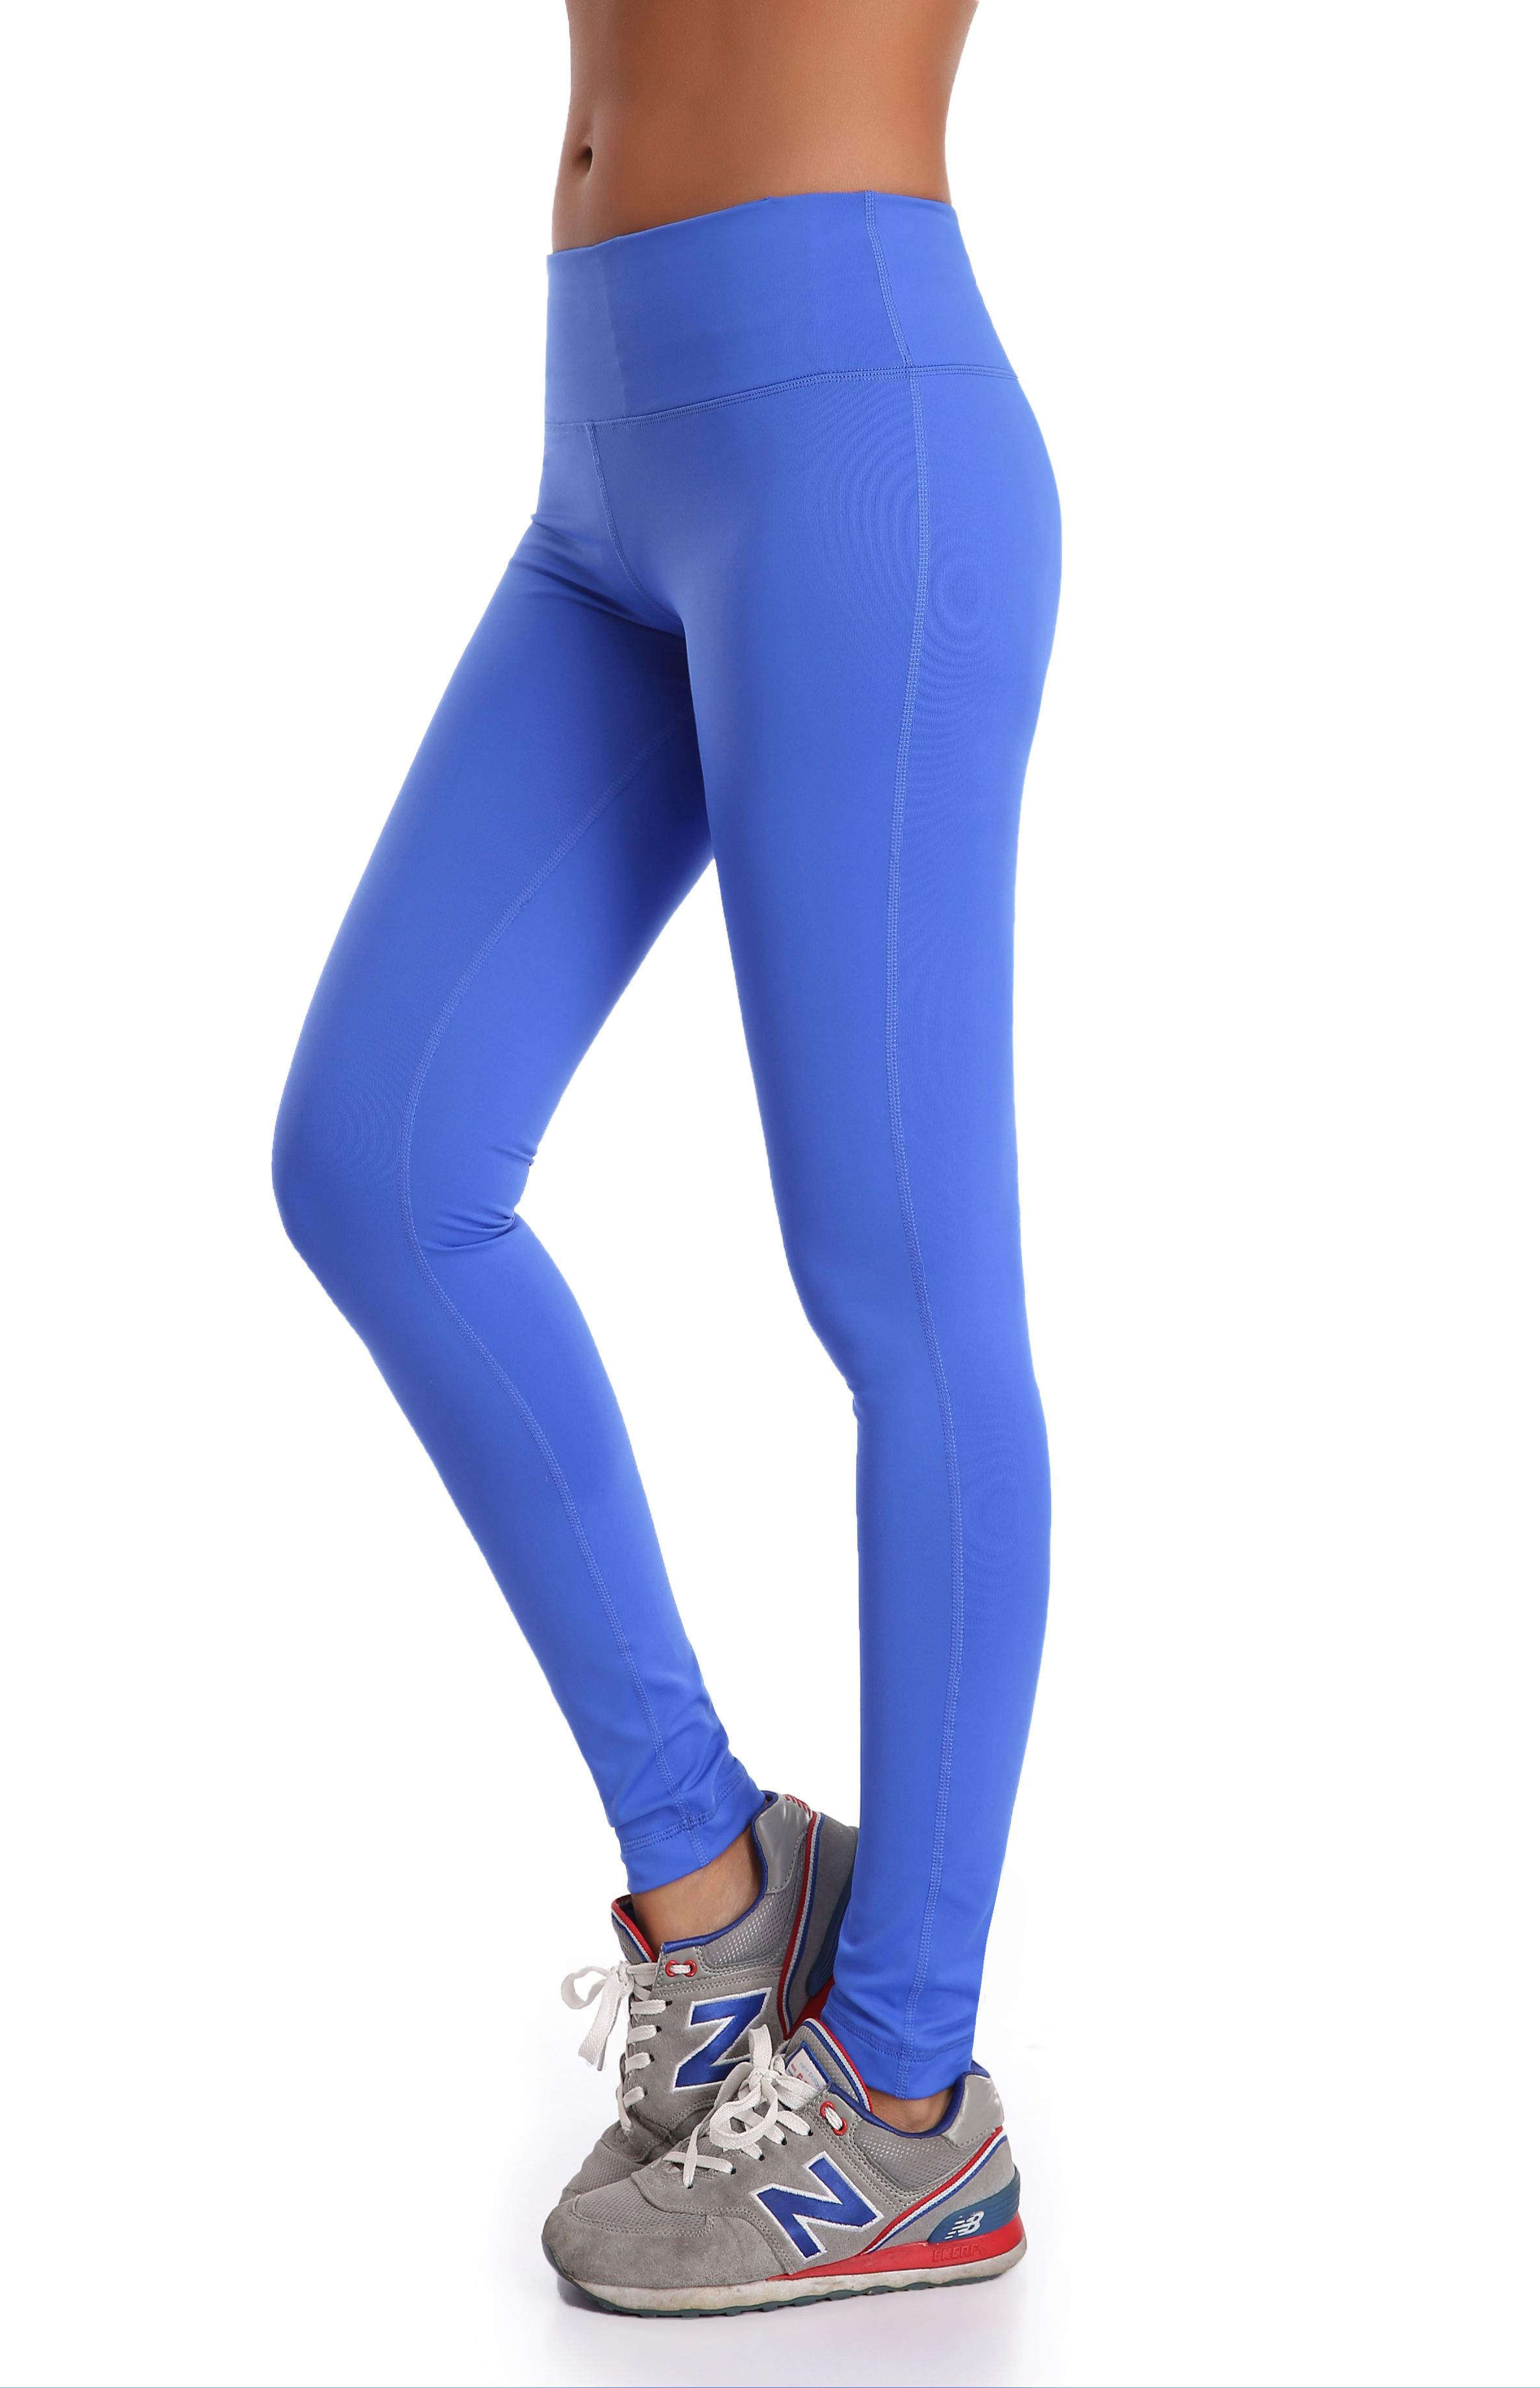 f75c928da1 Secure Smart Hidden Pocket that holds simple objects such as keys or credit  cards. Exceptional stay in place elastic high waist waistband Fitted full  length ...